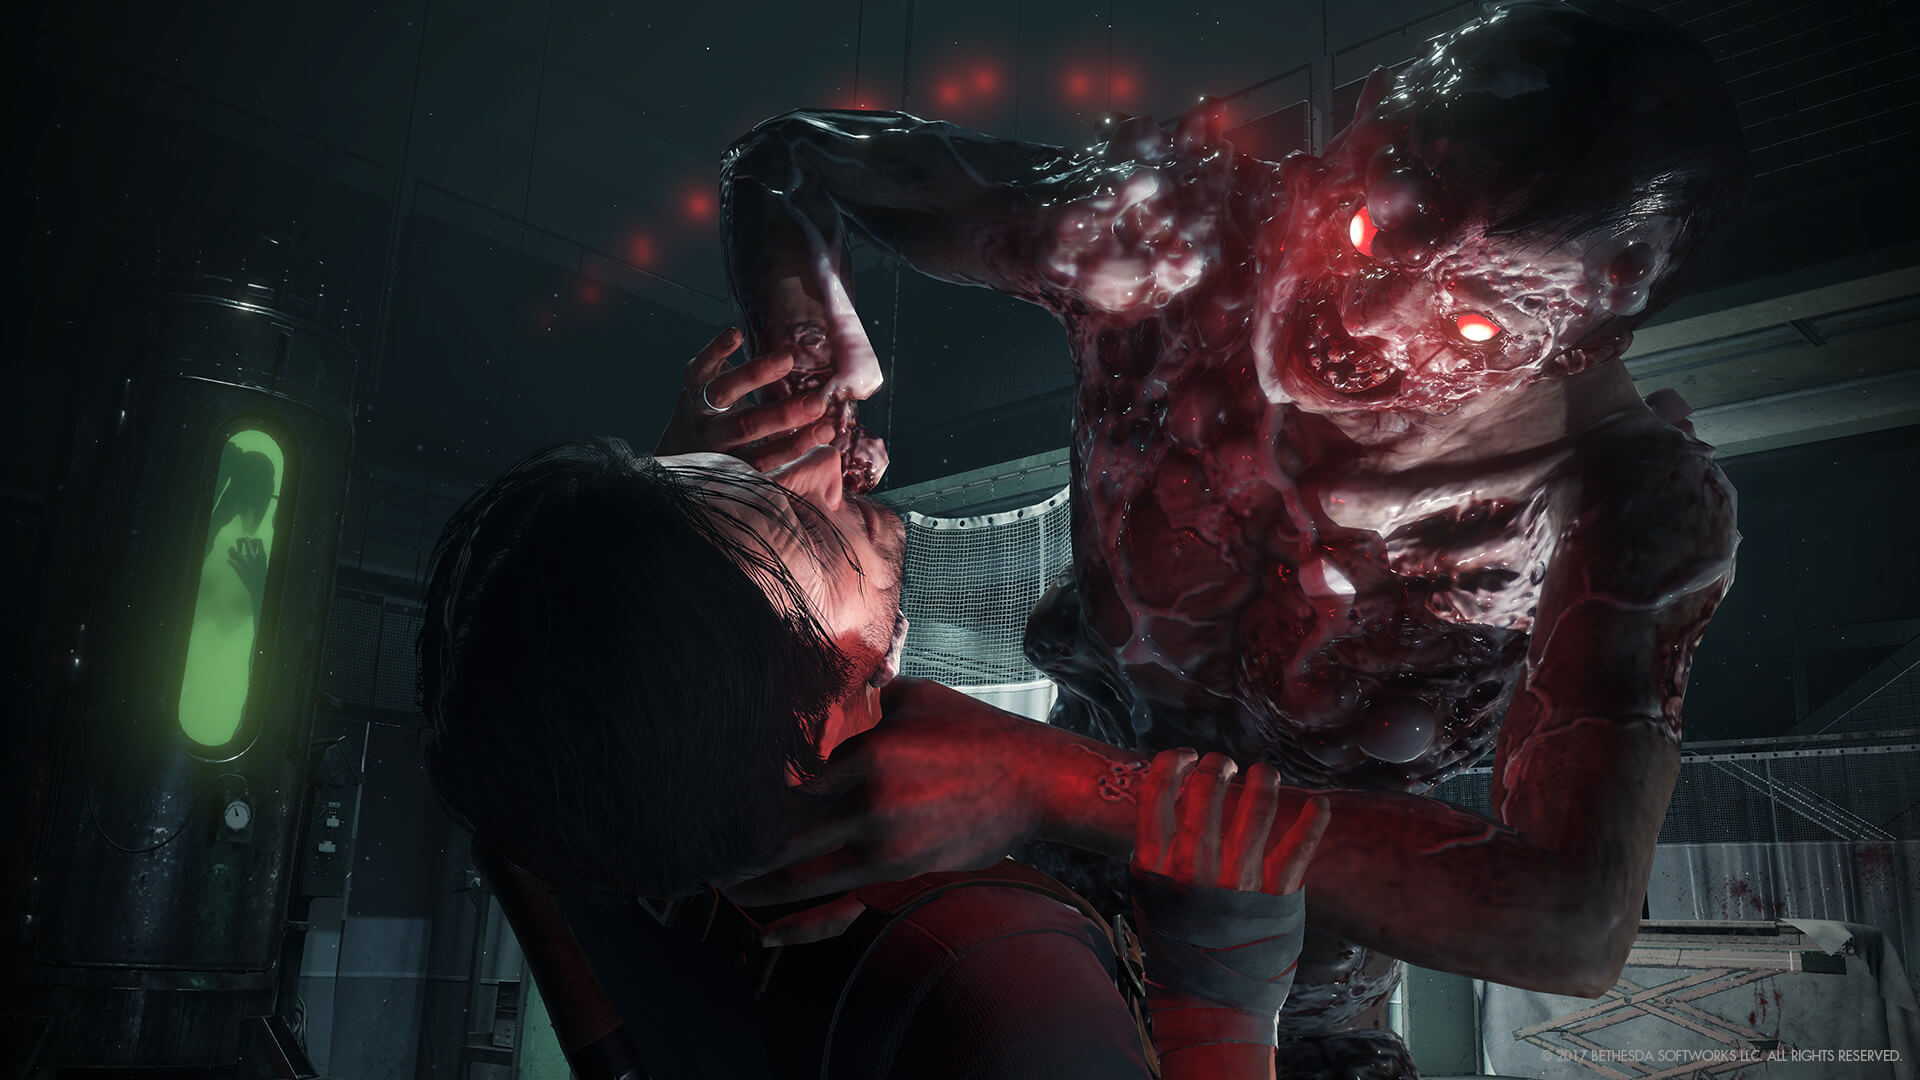 Best horror games of 2017 The Evil Within 2